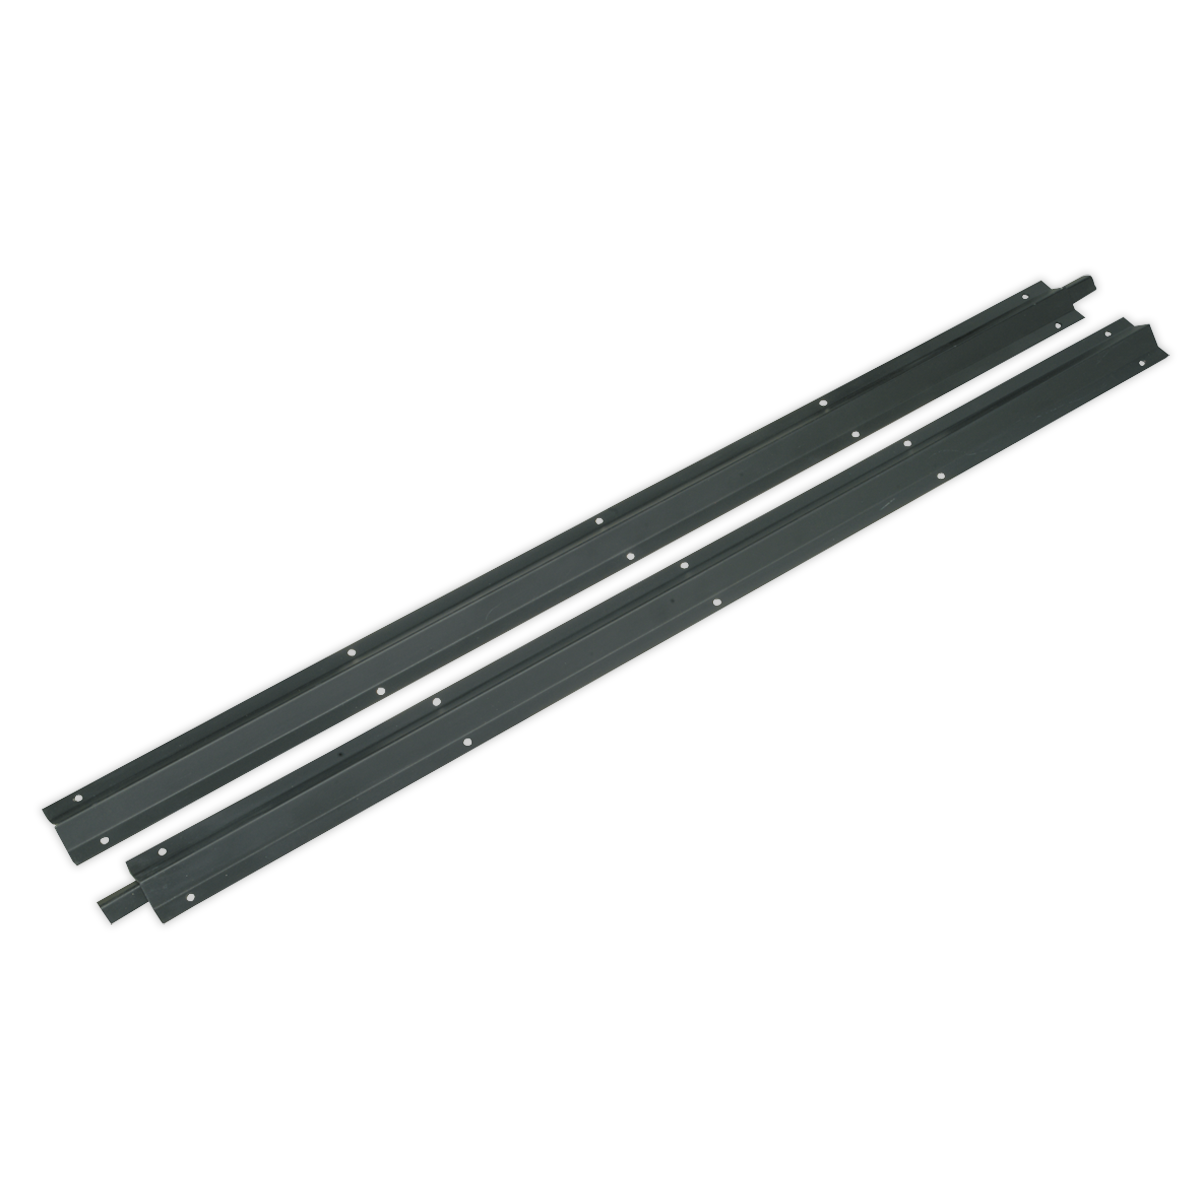 Extension Rail Set for HBS97 Series 1520mm